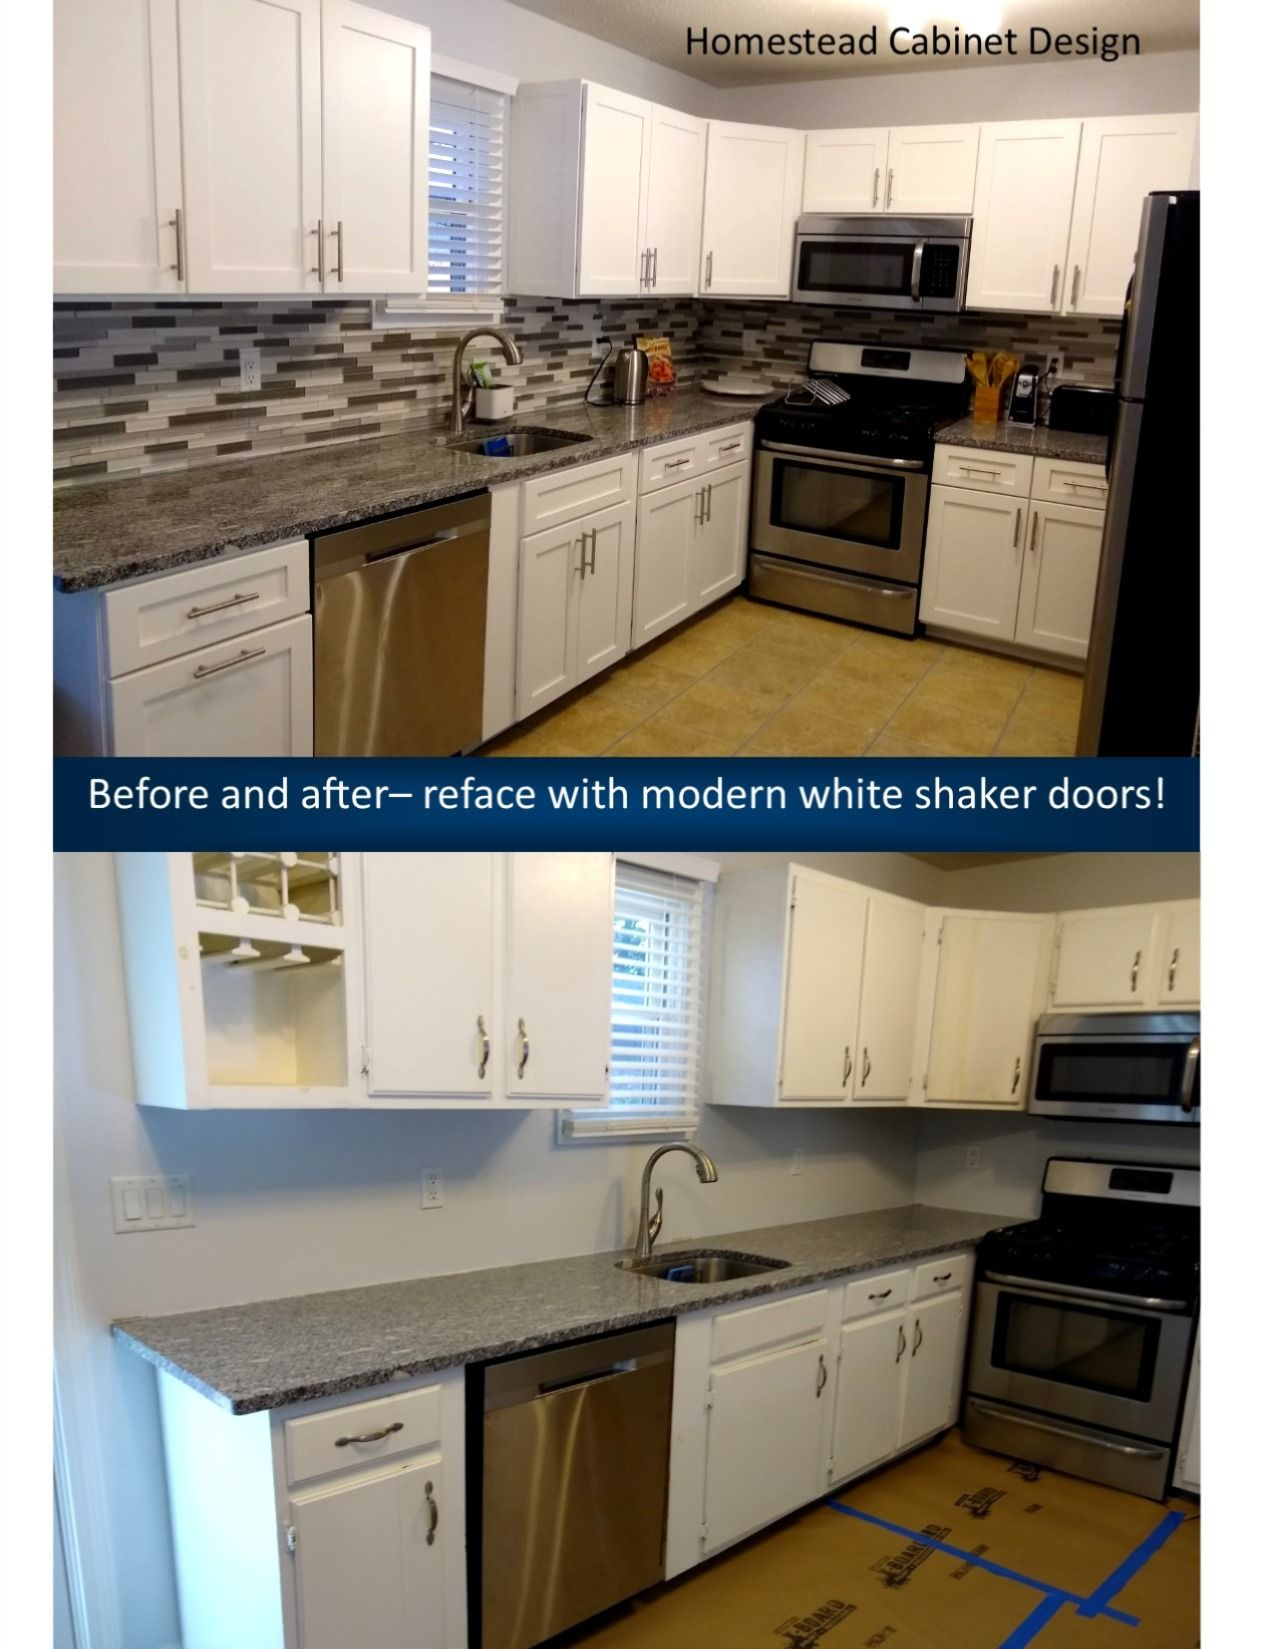 Update Your Kitchen Without Remodeling Check Out Homestead Cabinet Design For More Options In 2020 Cabinet Design Cabinet Cabinet Refacing